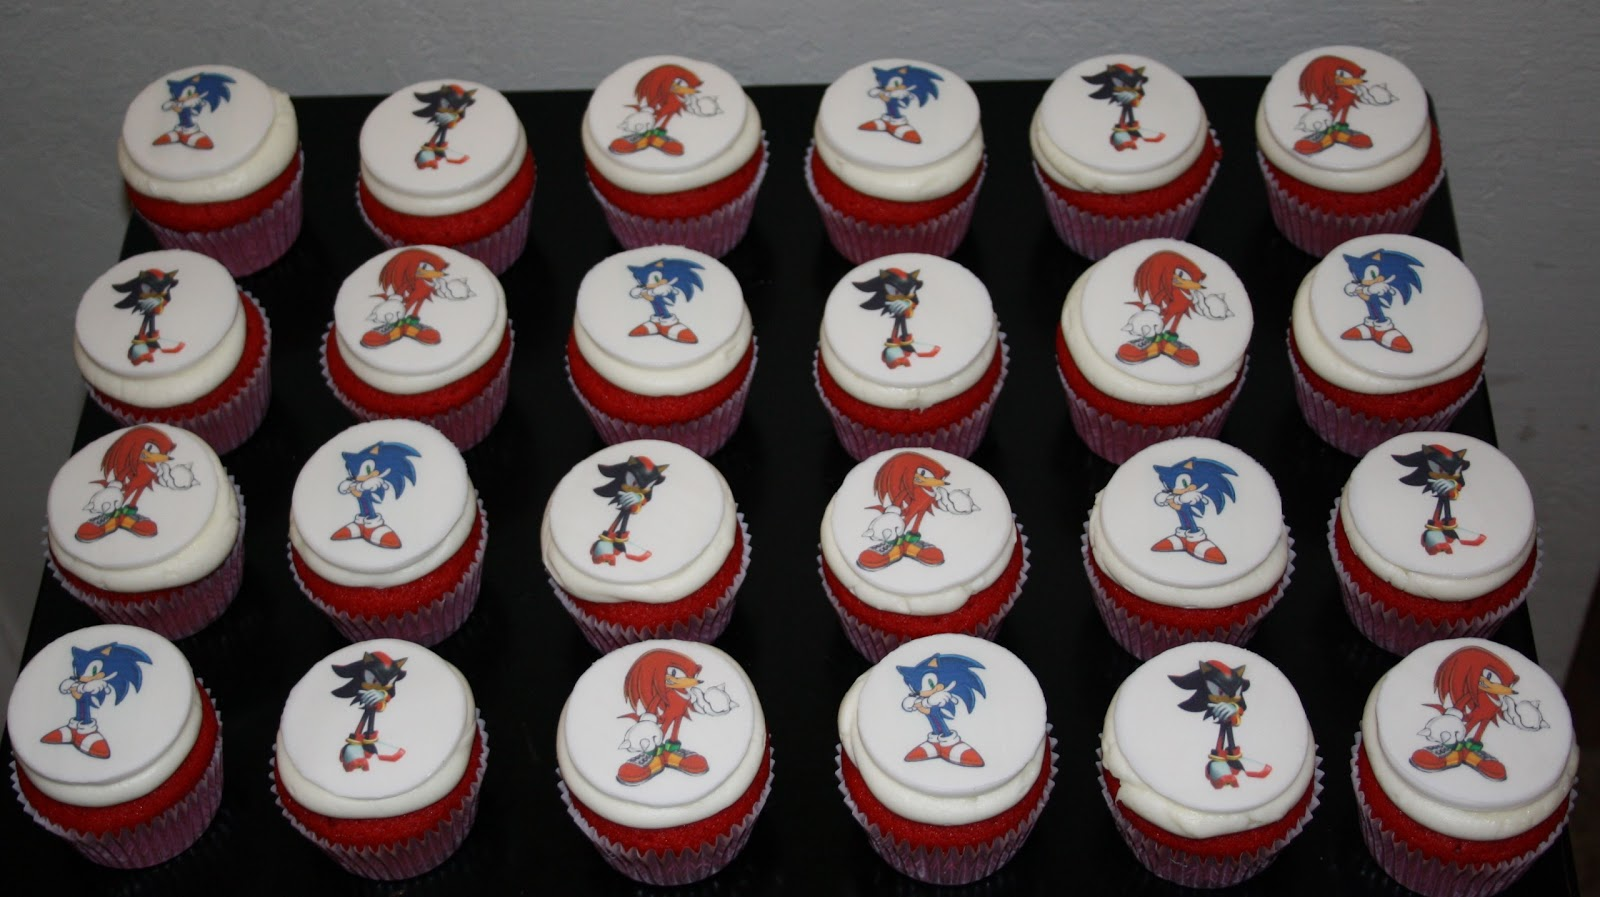 Jacqueline's Sweet Shop: Sonic the Hedgehog, Knuckles, and Shadow